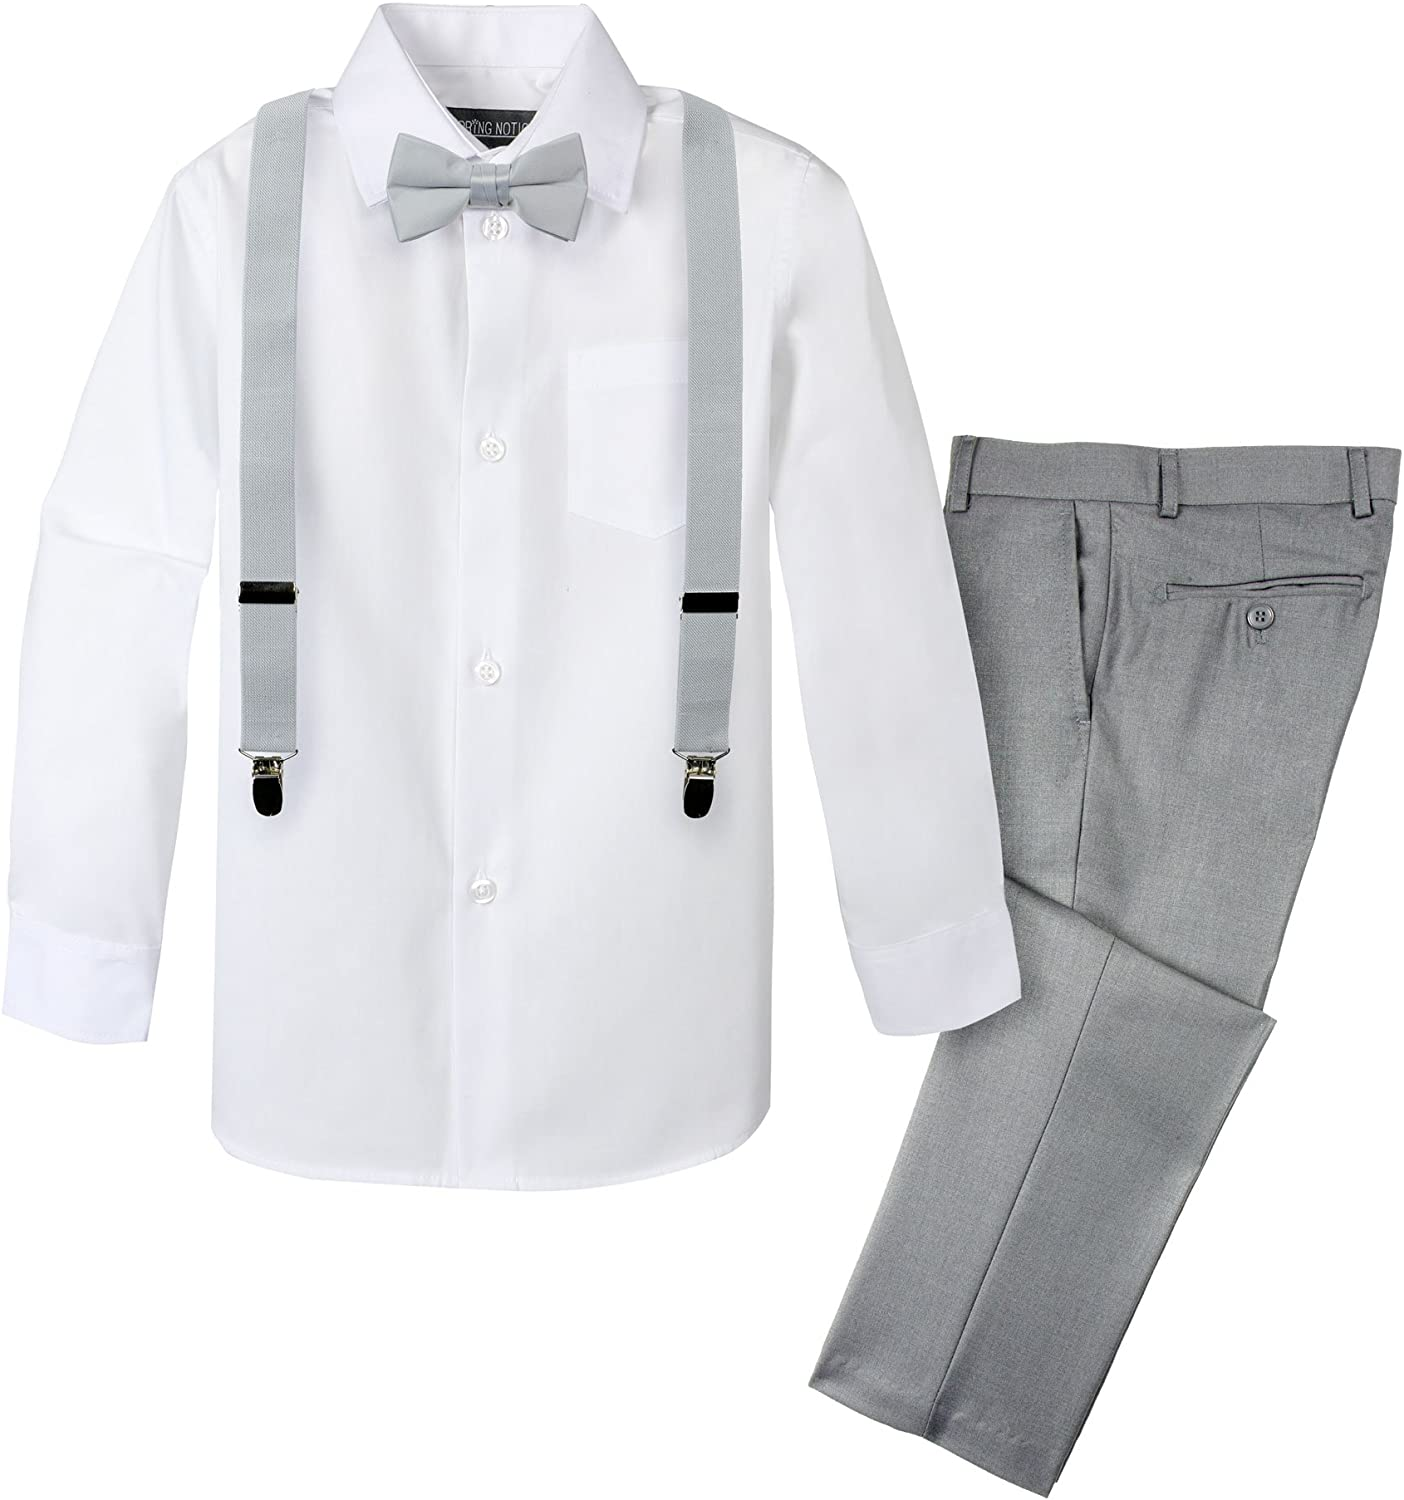 Spring Notion Boys' 4-Piece Suspender Outfit, Customizable Option Available